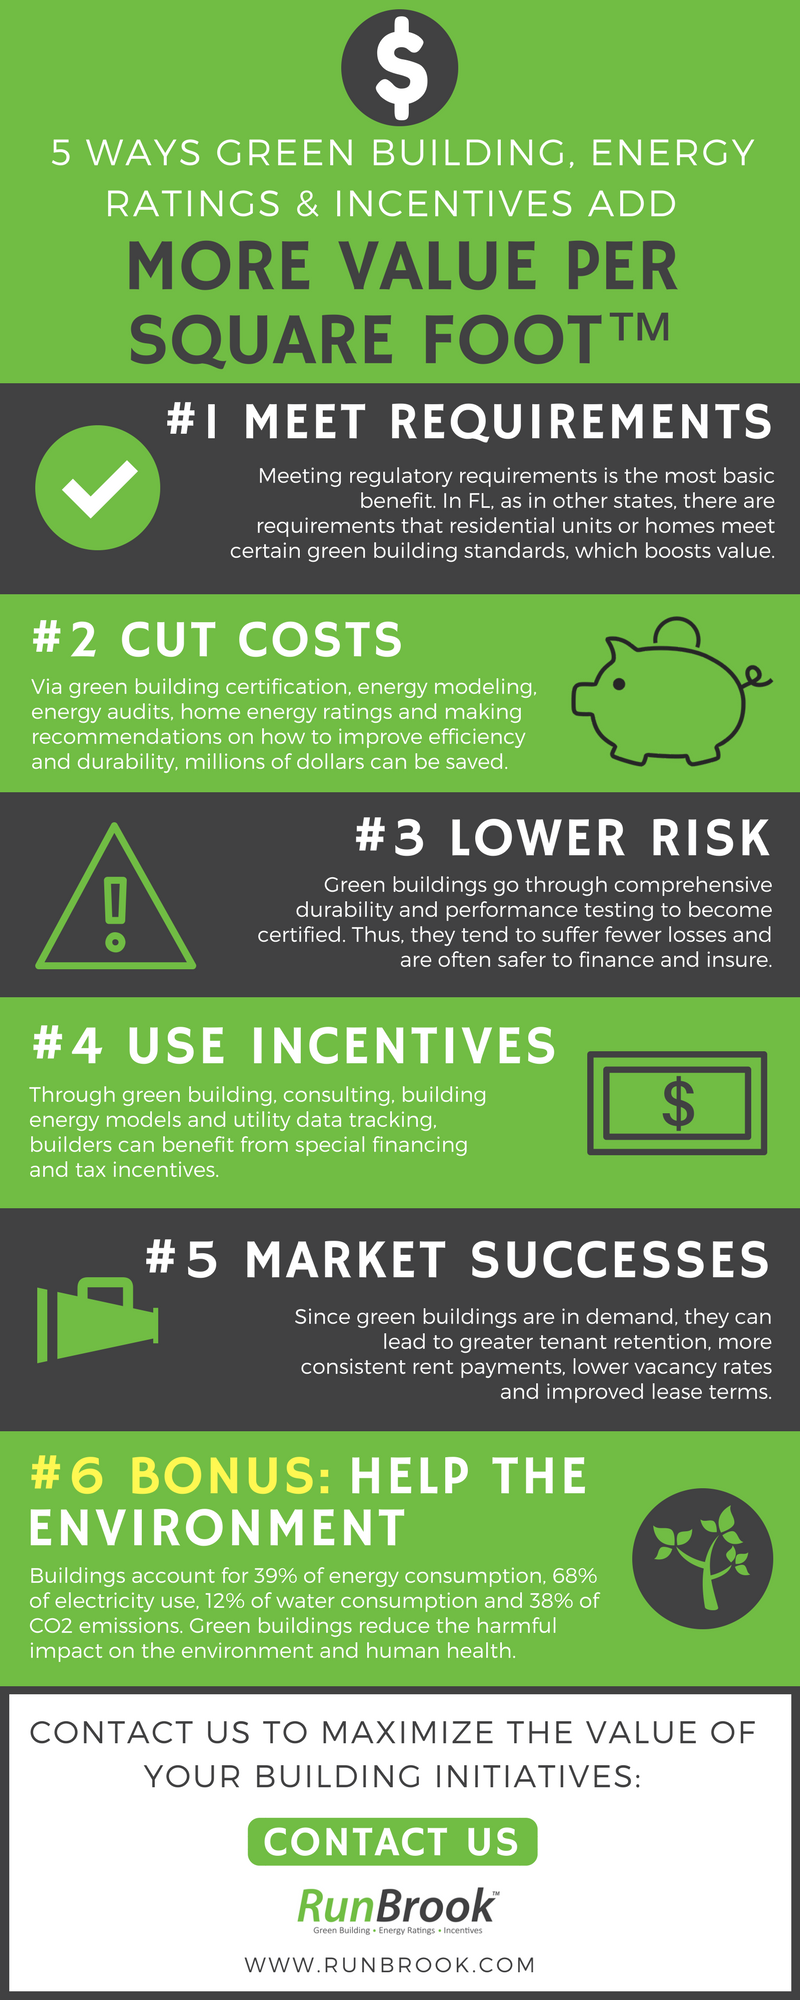 5 Ways Green Building, Energy Ratings and Incentives Add More Value Per Square Foot™ by RunBrook.png